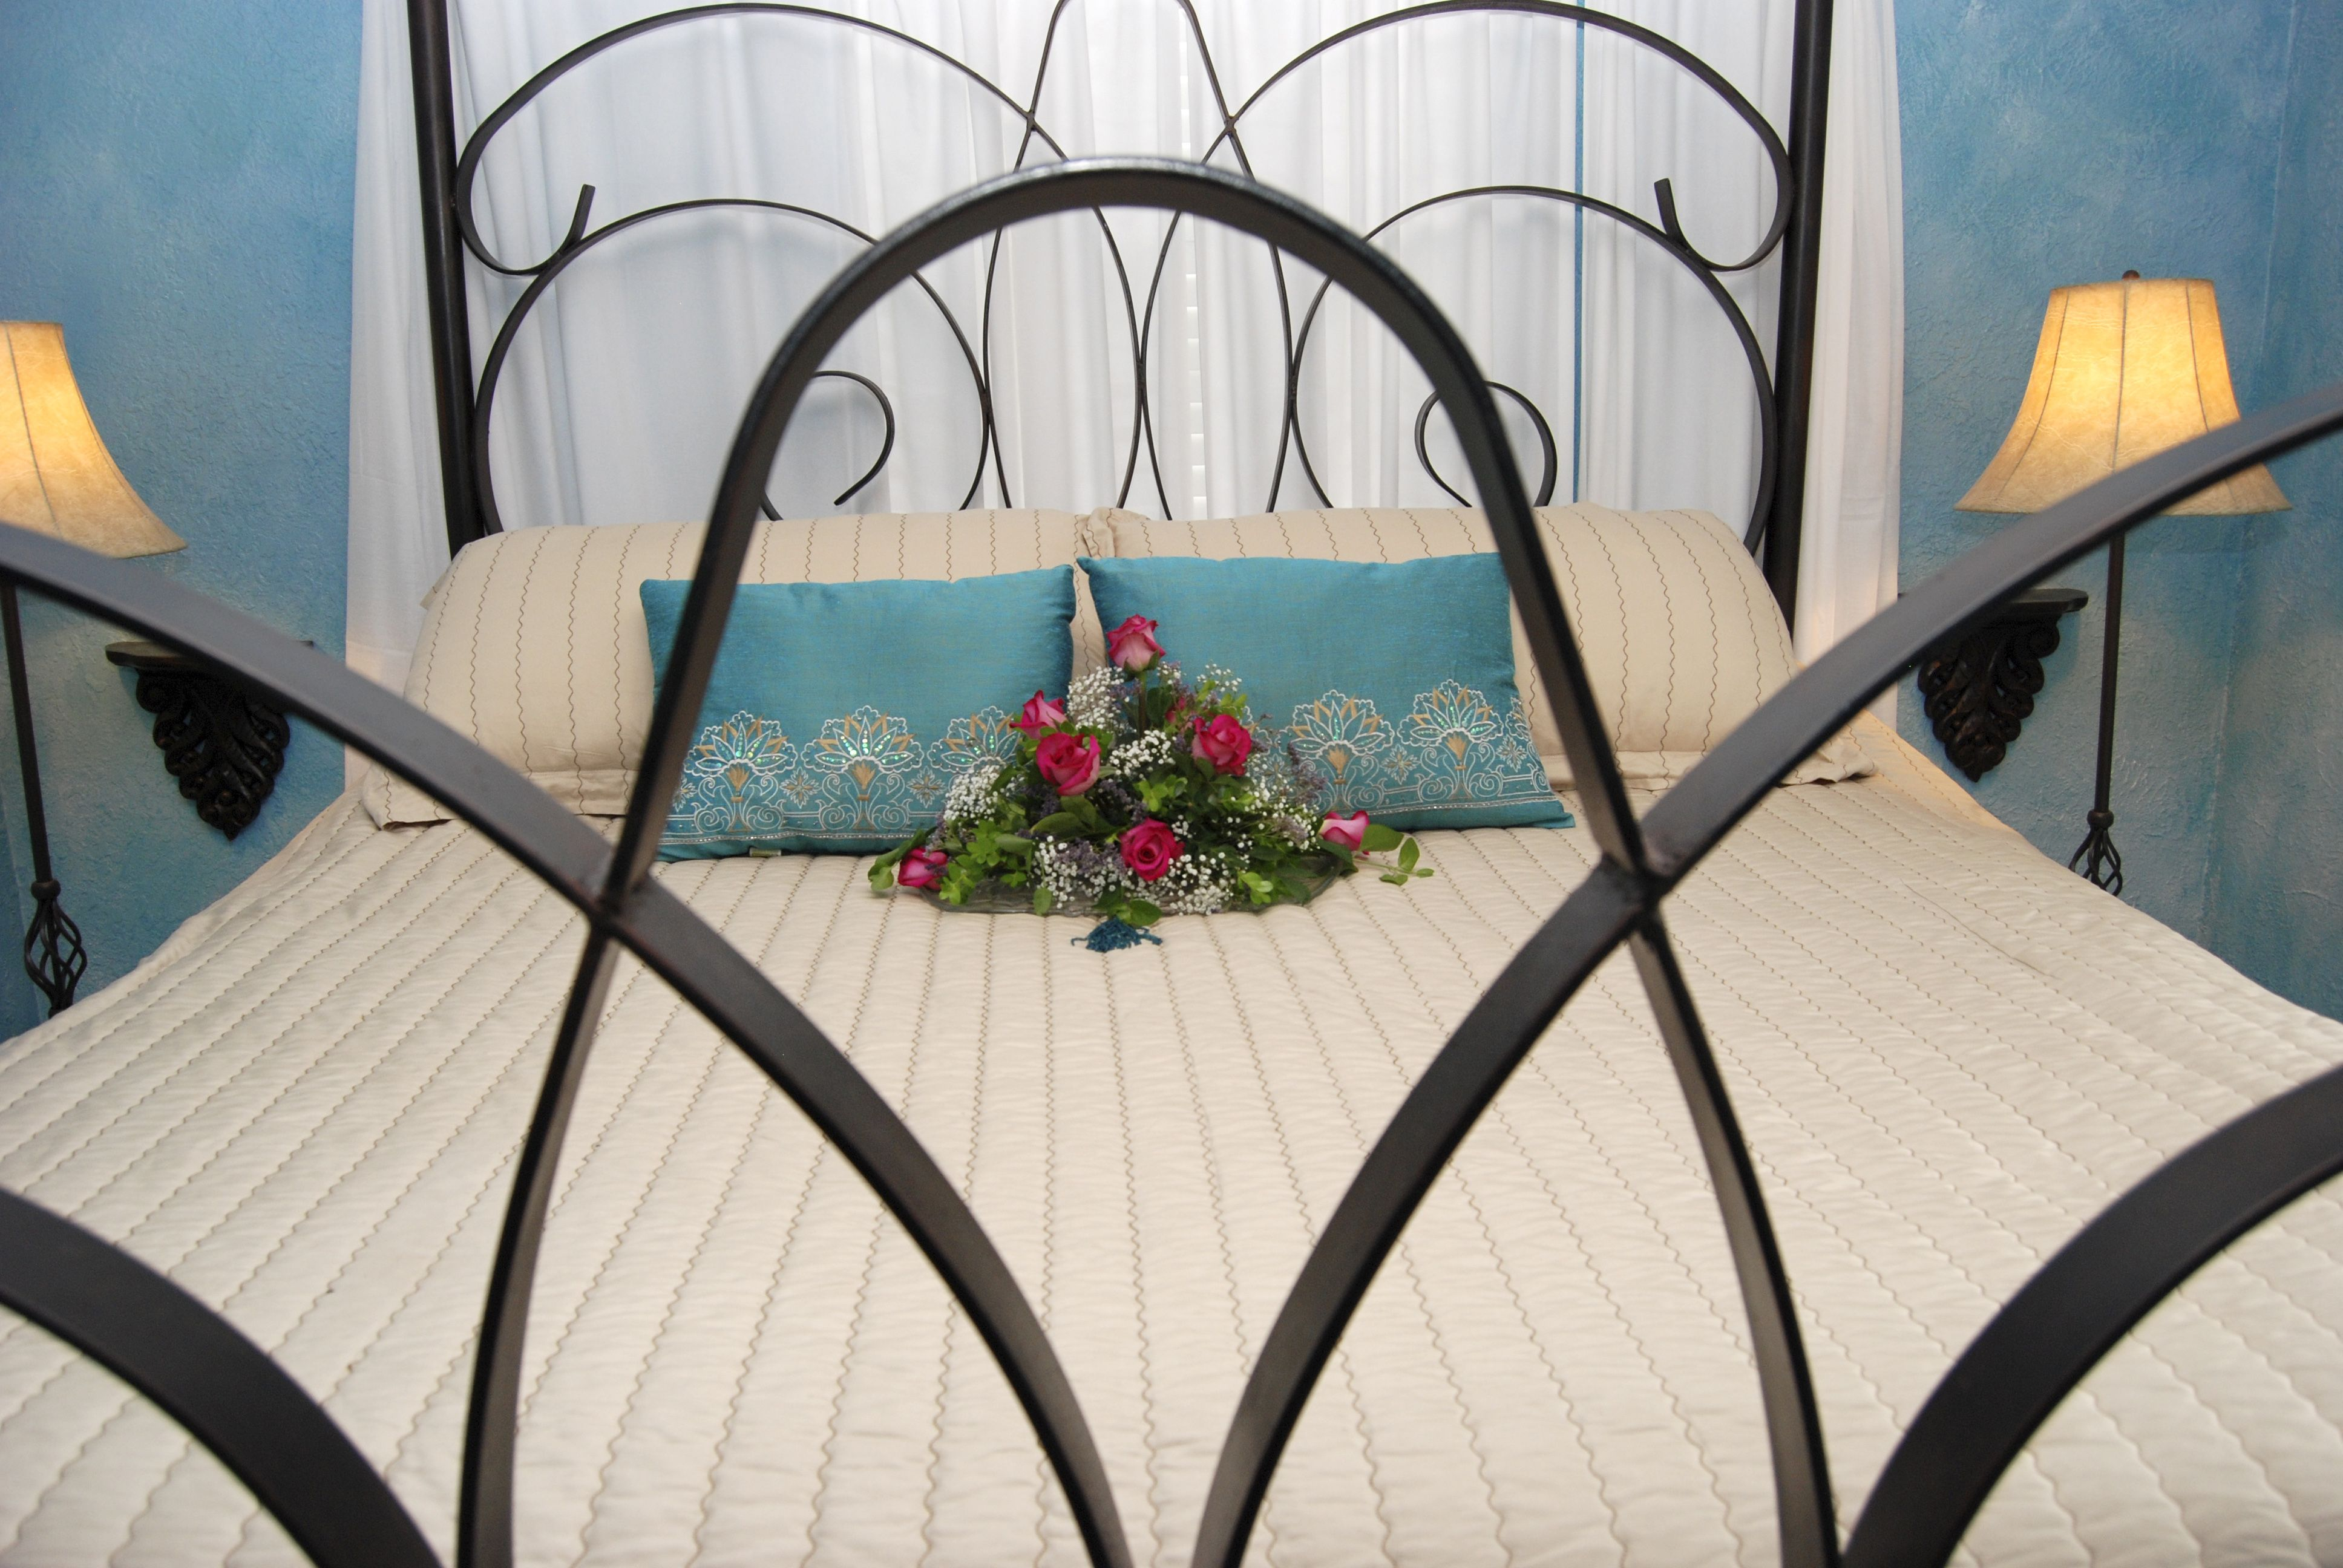 Mediterranean Suite Classy bedroom, Lake house, Bed and